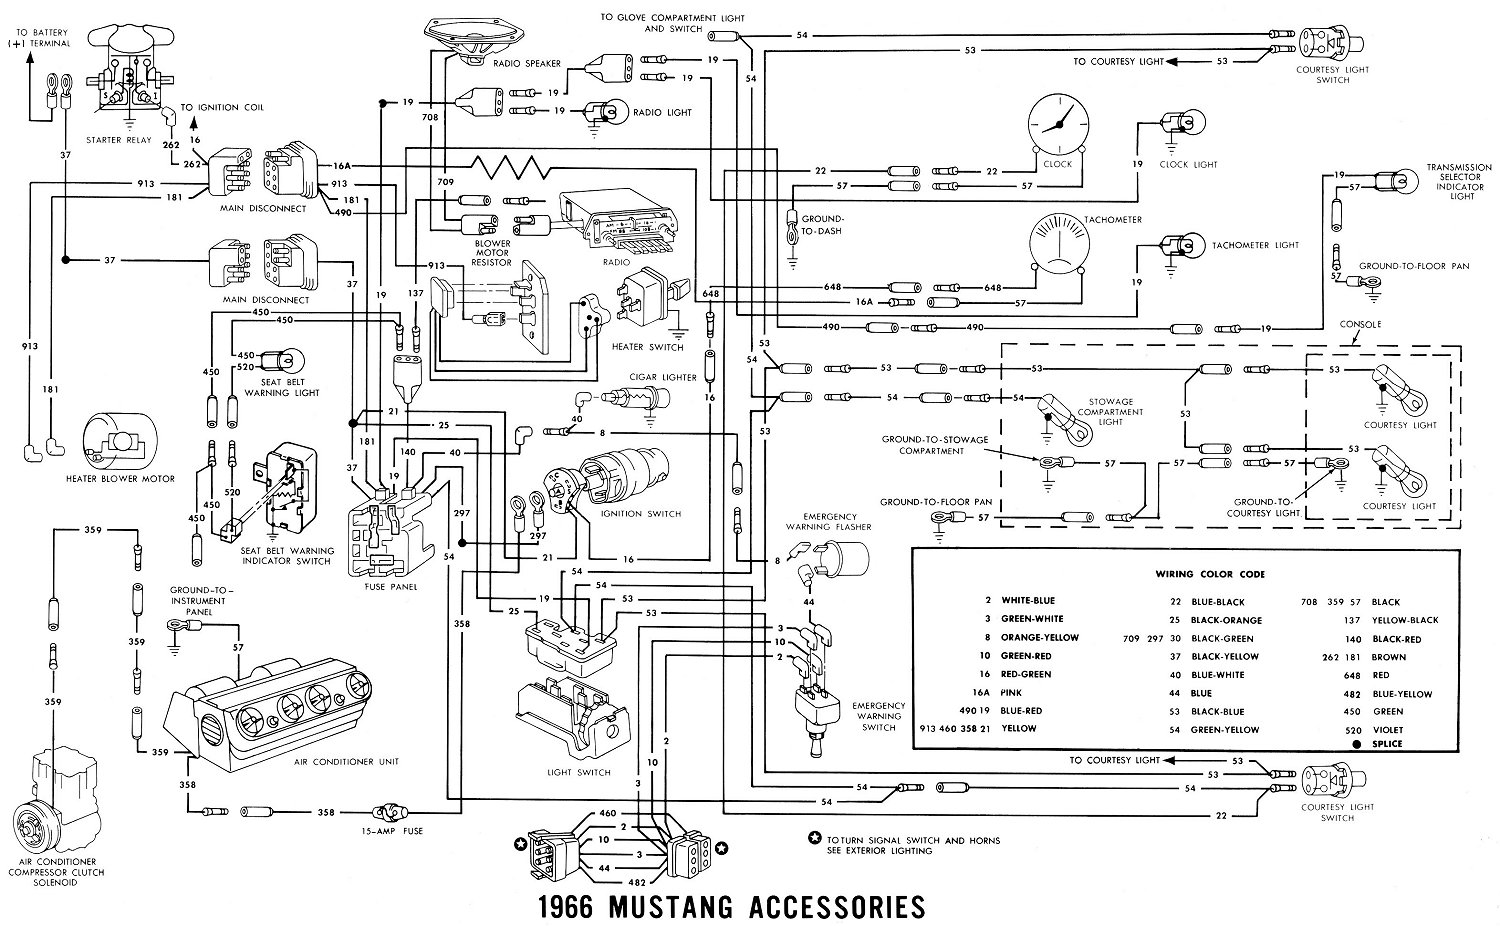 66acces1 66 mustang wiring diagram online 65 ford mustang wiring diagram 1965 ford mustang wiring diagrams at arjmand.co